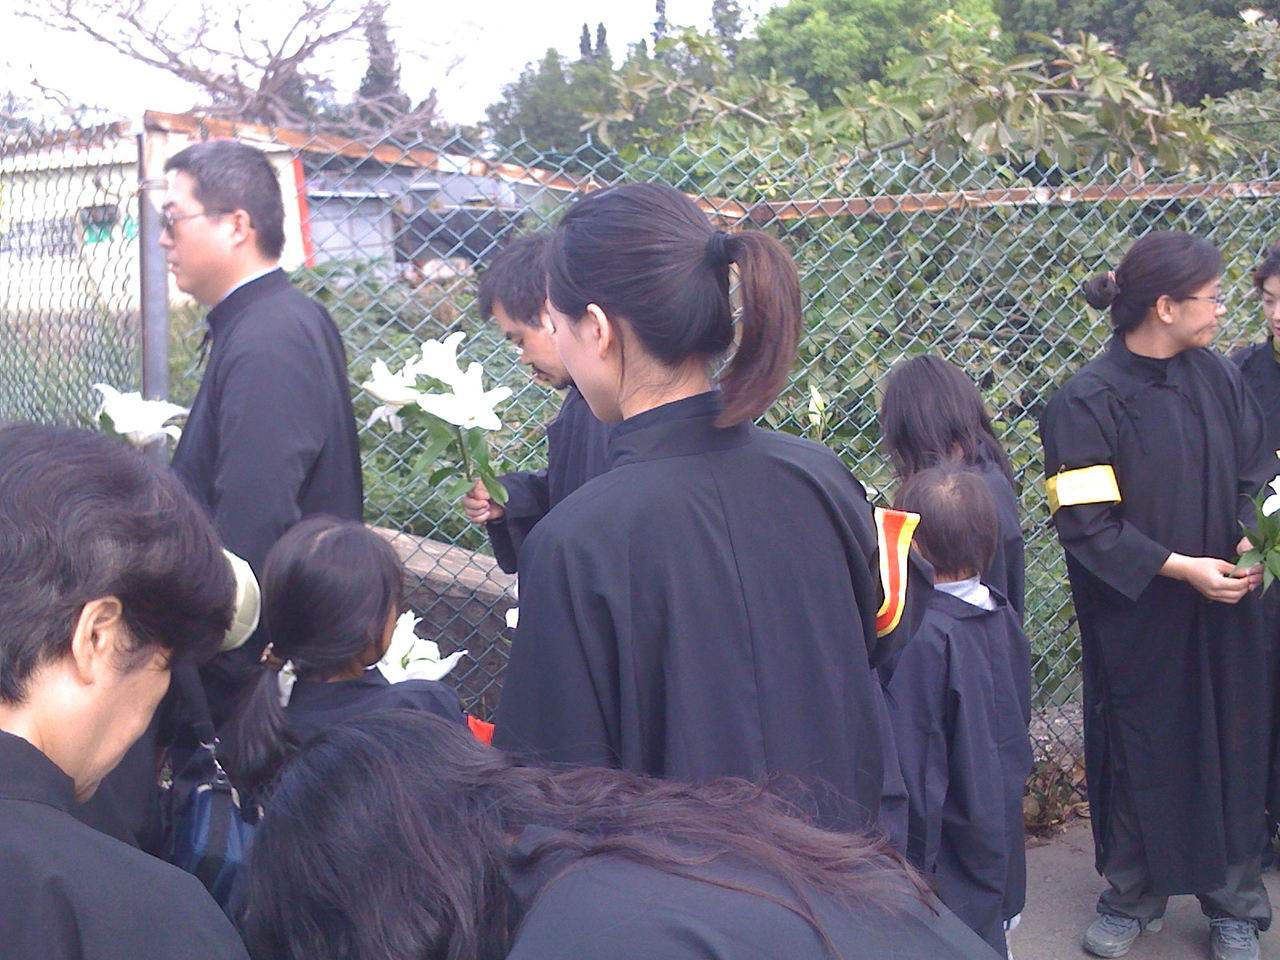 2008 11 26 Wed - Funeral family in black robes & colored armbands holding casablanca lillies